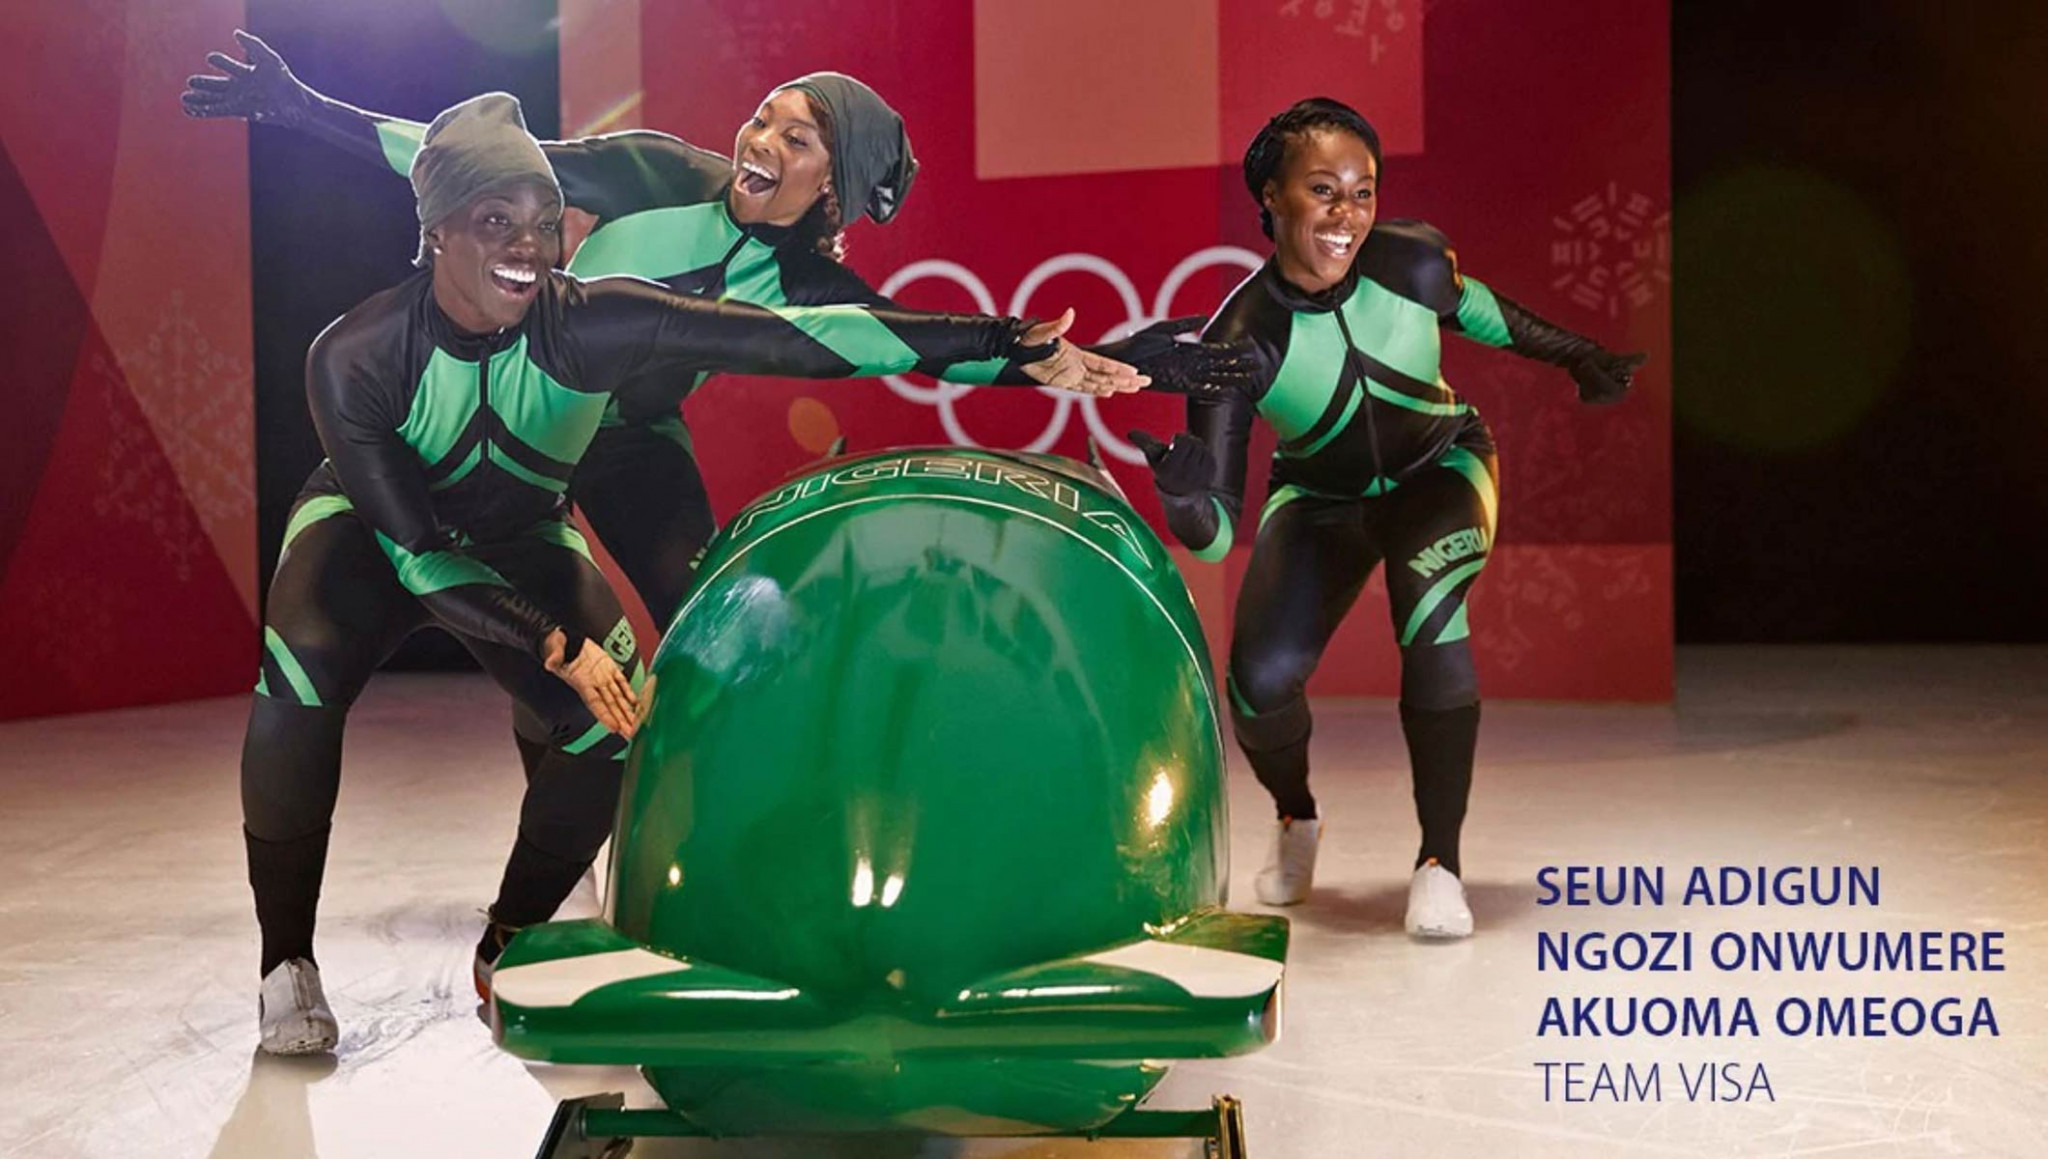 The Nigerian women's bobsleigh team have joined Team Visa in a bid to qualify for Pyeongchang 2018 ©IOC